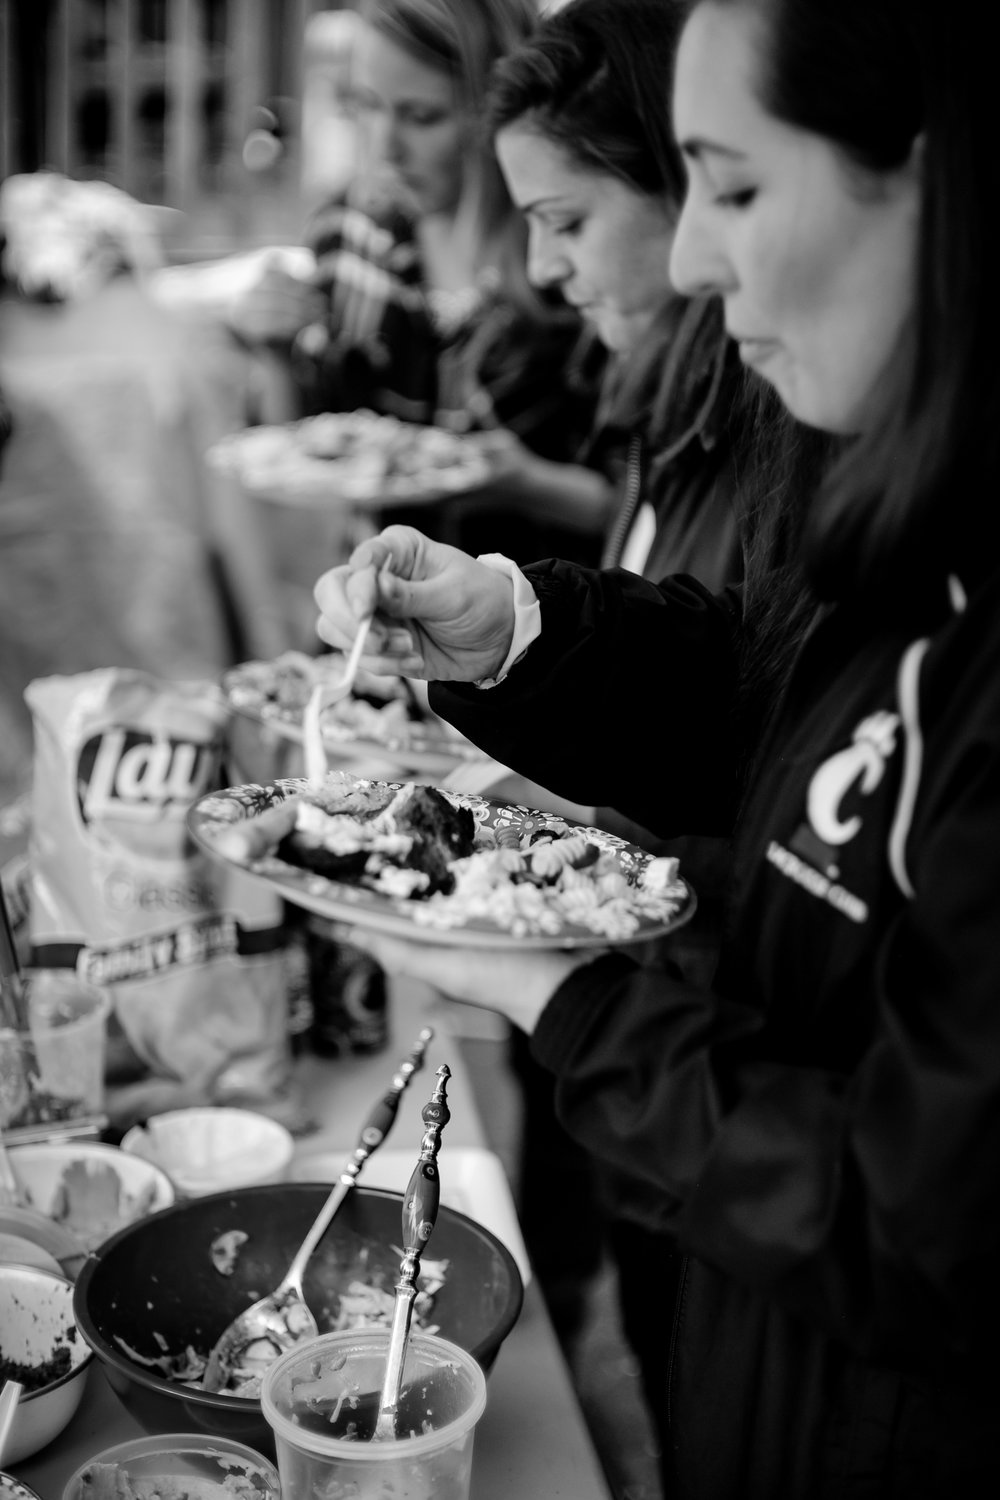 20170506_pigroast_edible_0534bw_WEB.jpg